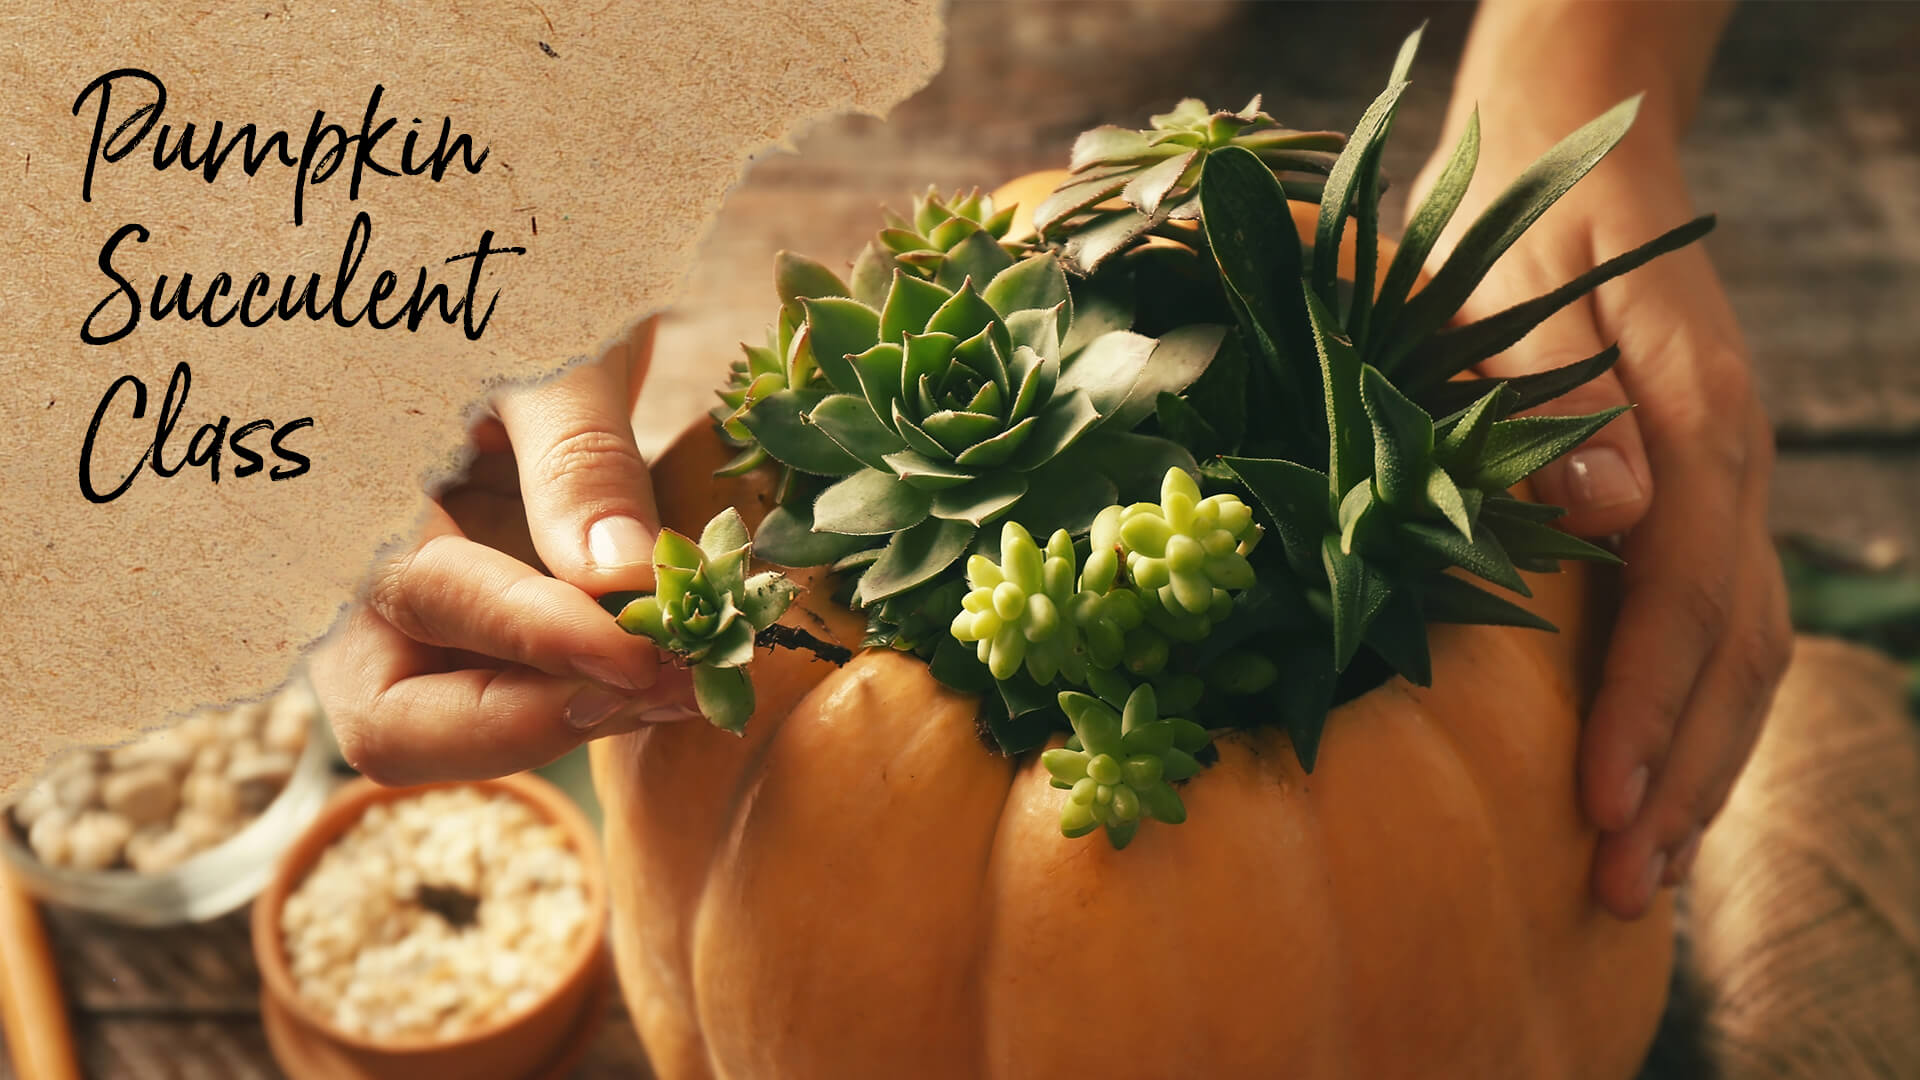 Pumpkin Succulent Class – Sold Out